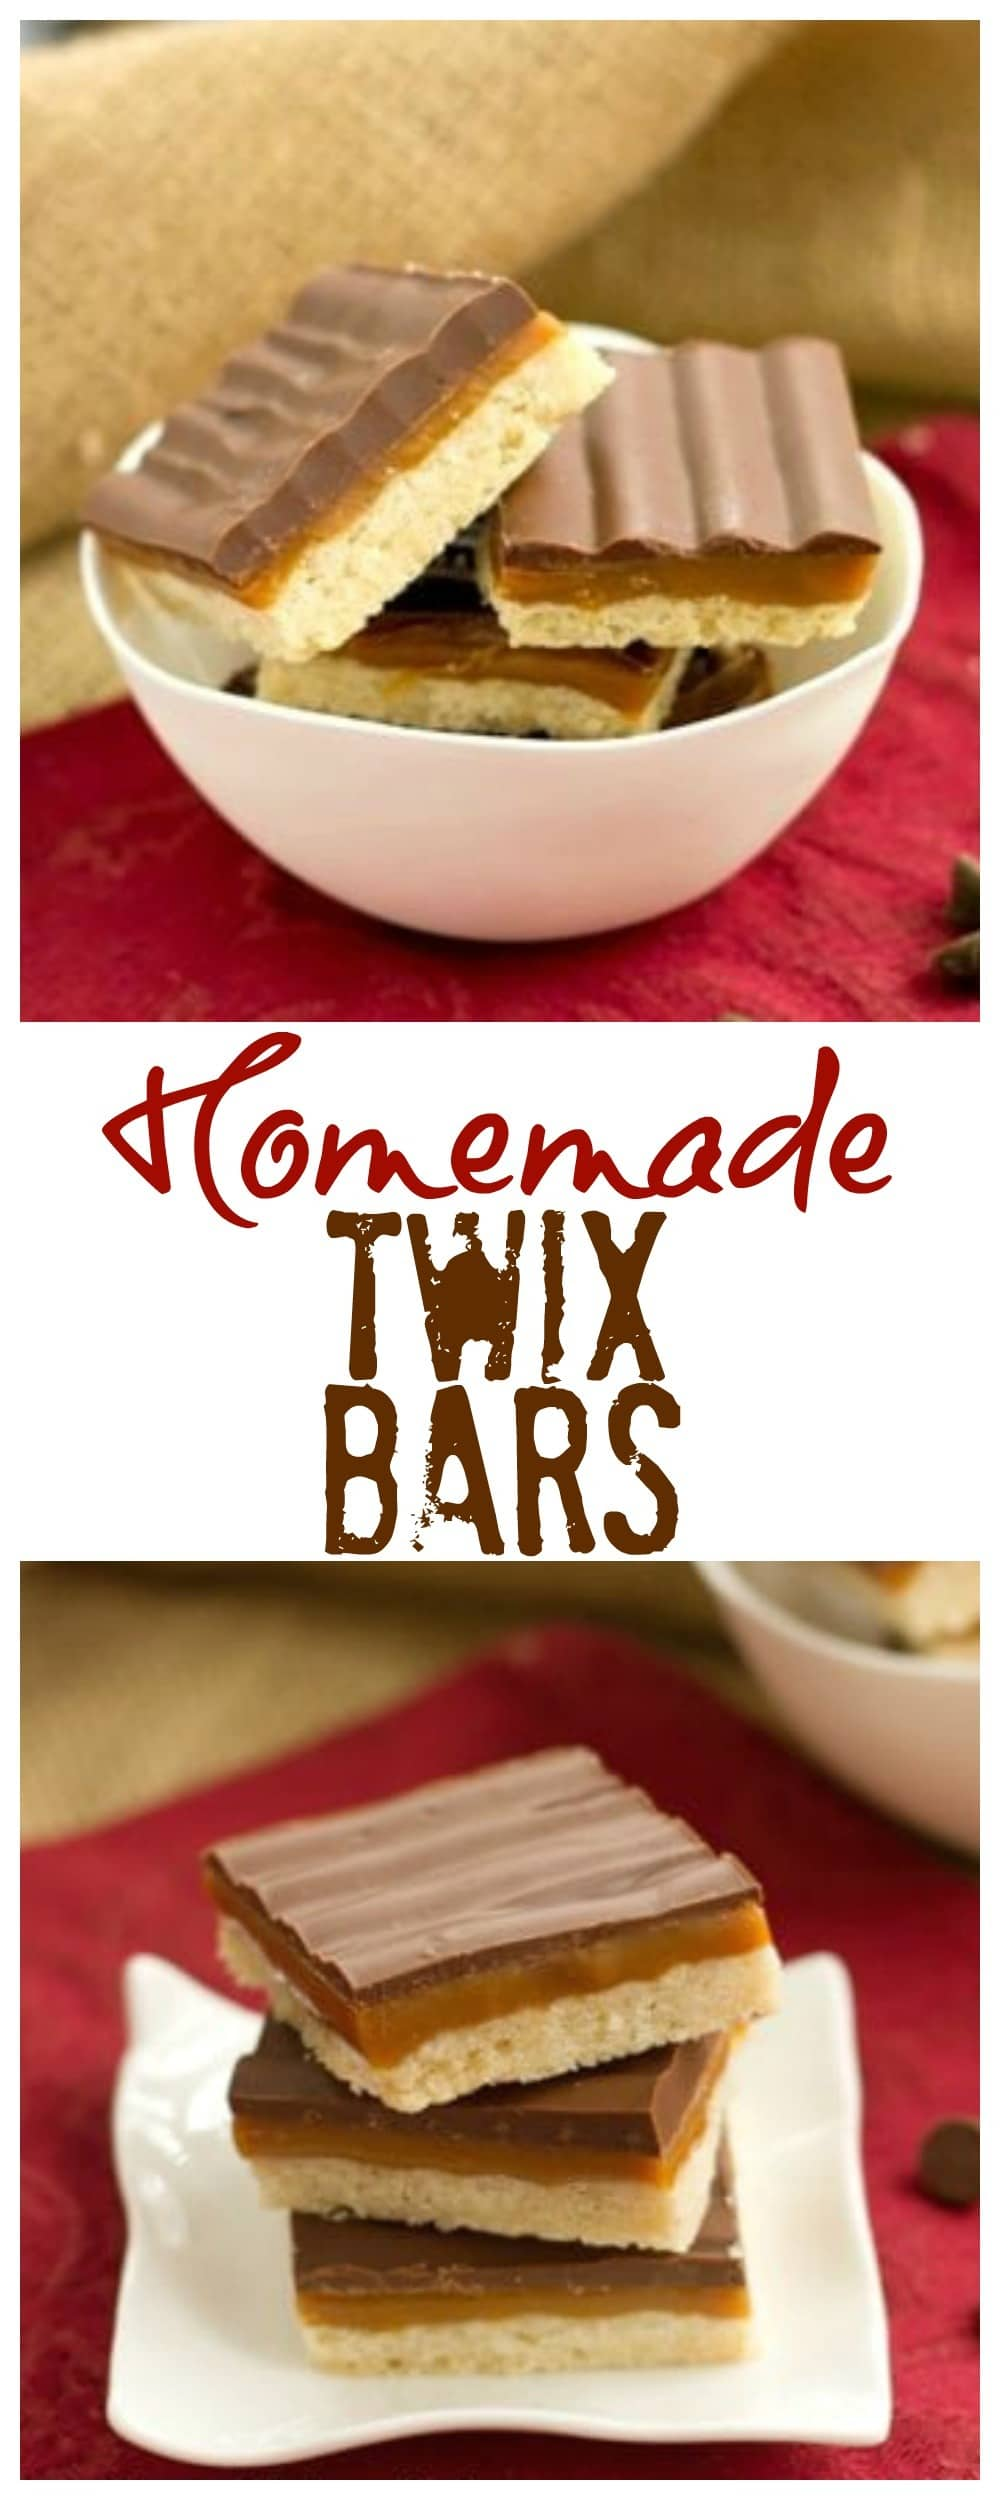 Homemade Twix Bars - bars with a shortbread crust, decadent layer of caramel and chocolate glaze. #twixbars #caramel #chocolate #barcookies